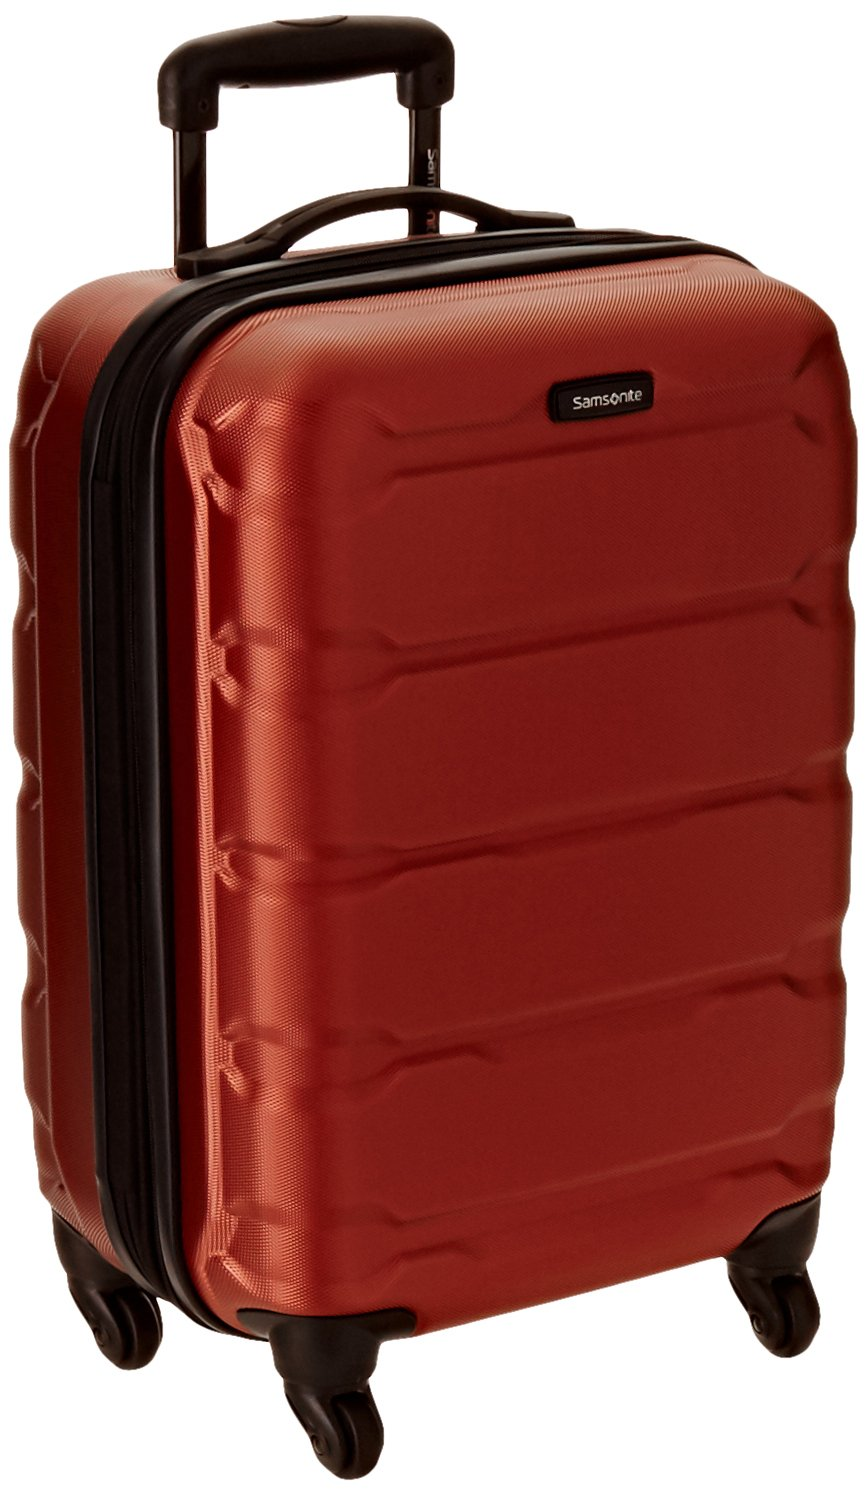 Samsonite Omni PC Hardside Spinner 20, Burnt Orange, One Size Samsonite Corporation 68308-1156